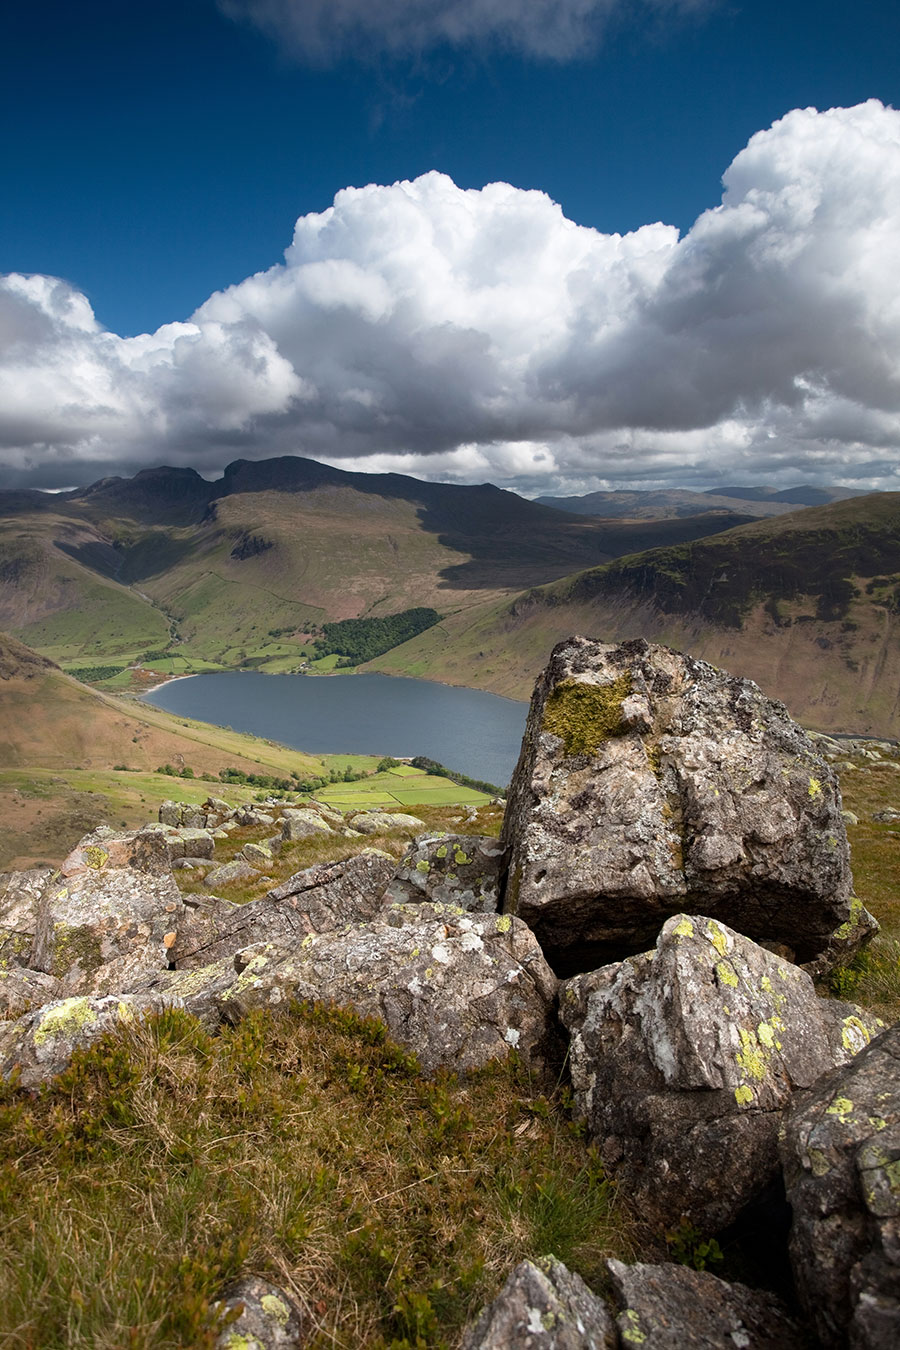 Wast-Water-and-the-Scafells-from-Middle-Fell.jpg